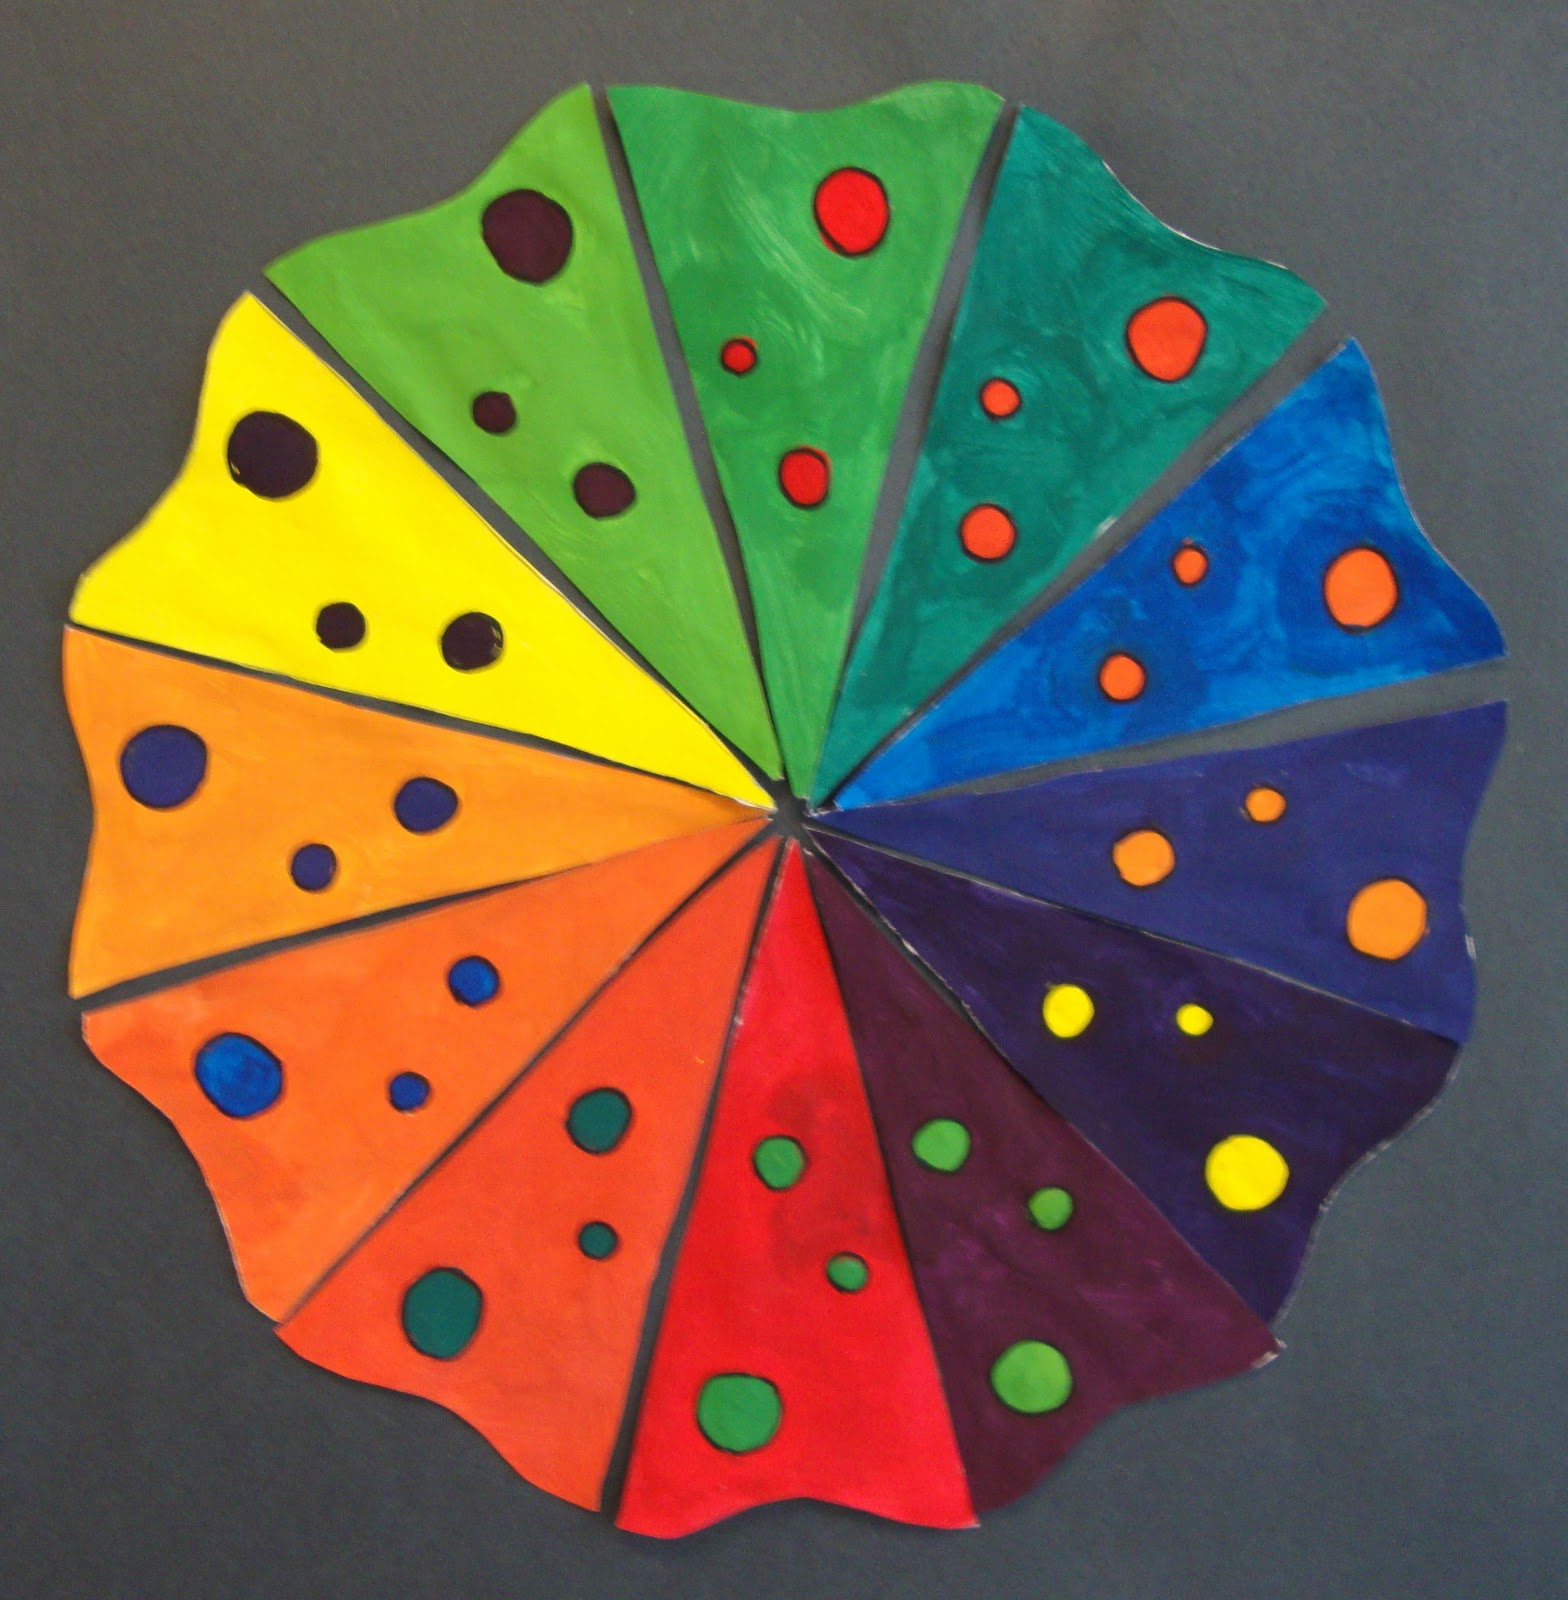 Colors Theory Complementary Colors Radial Symmetry